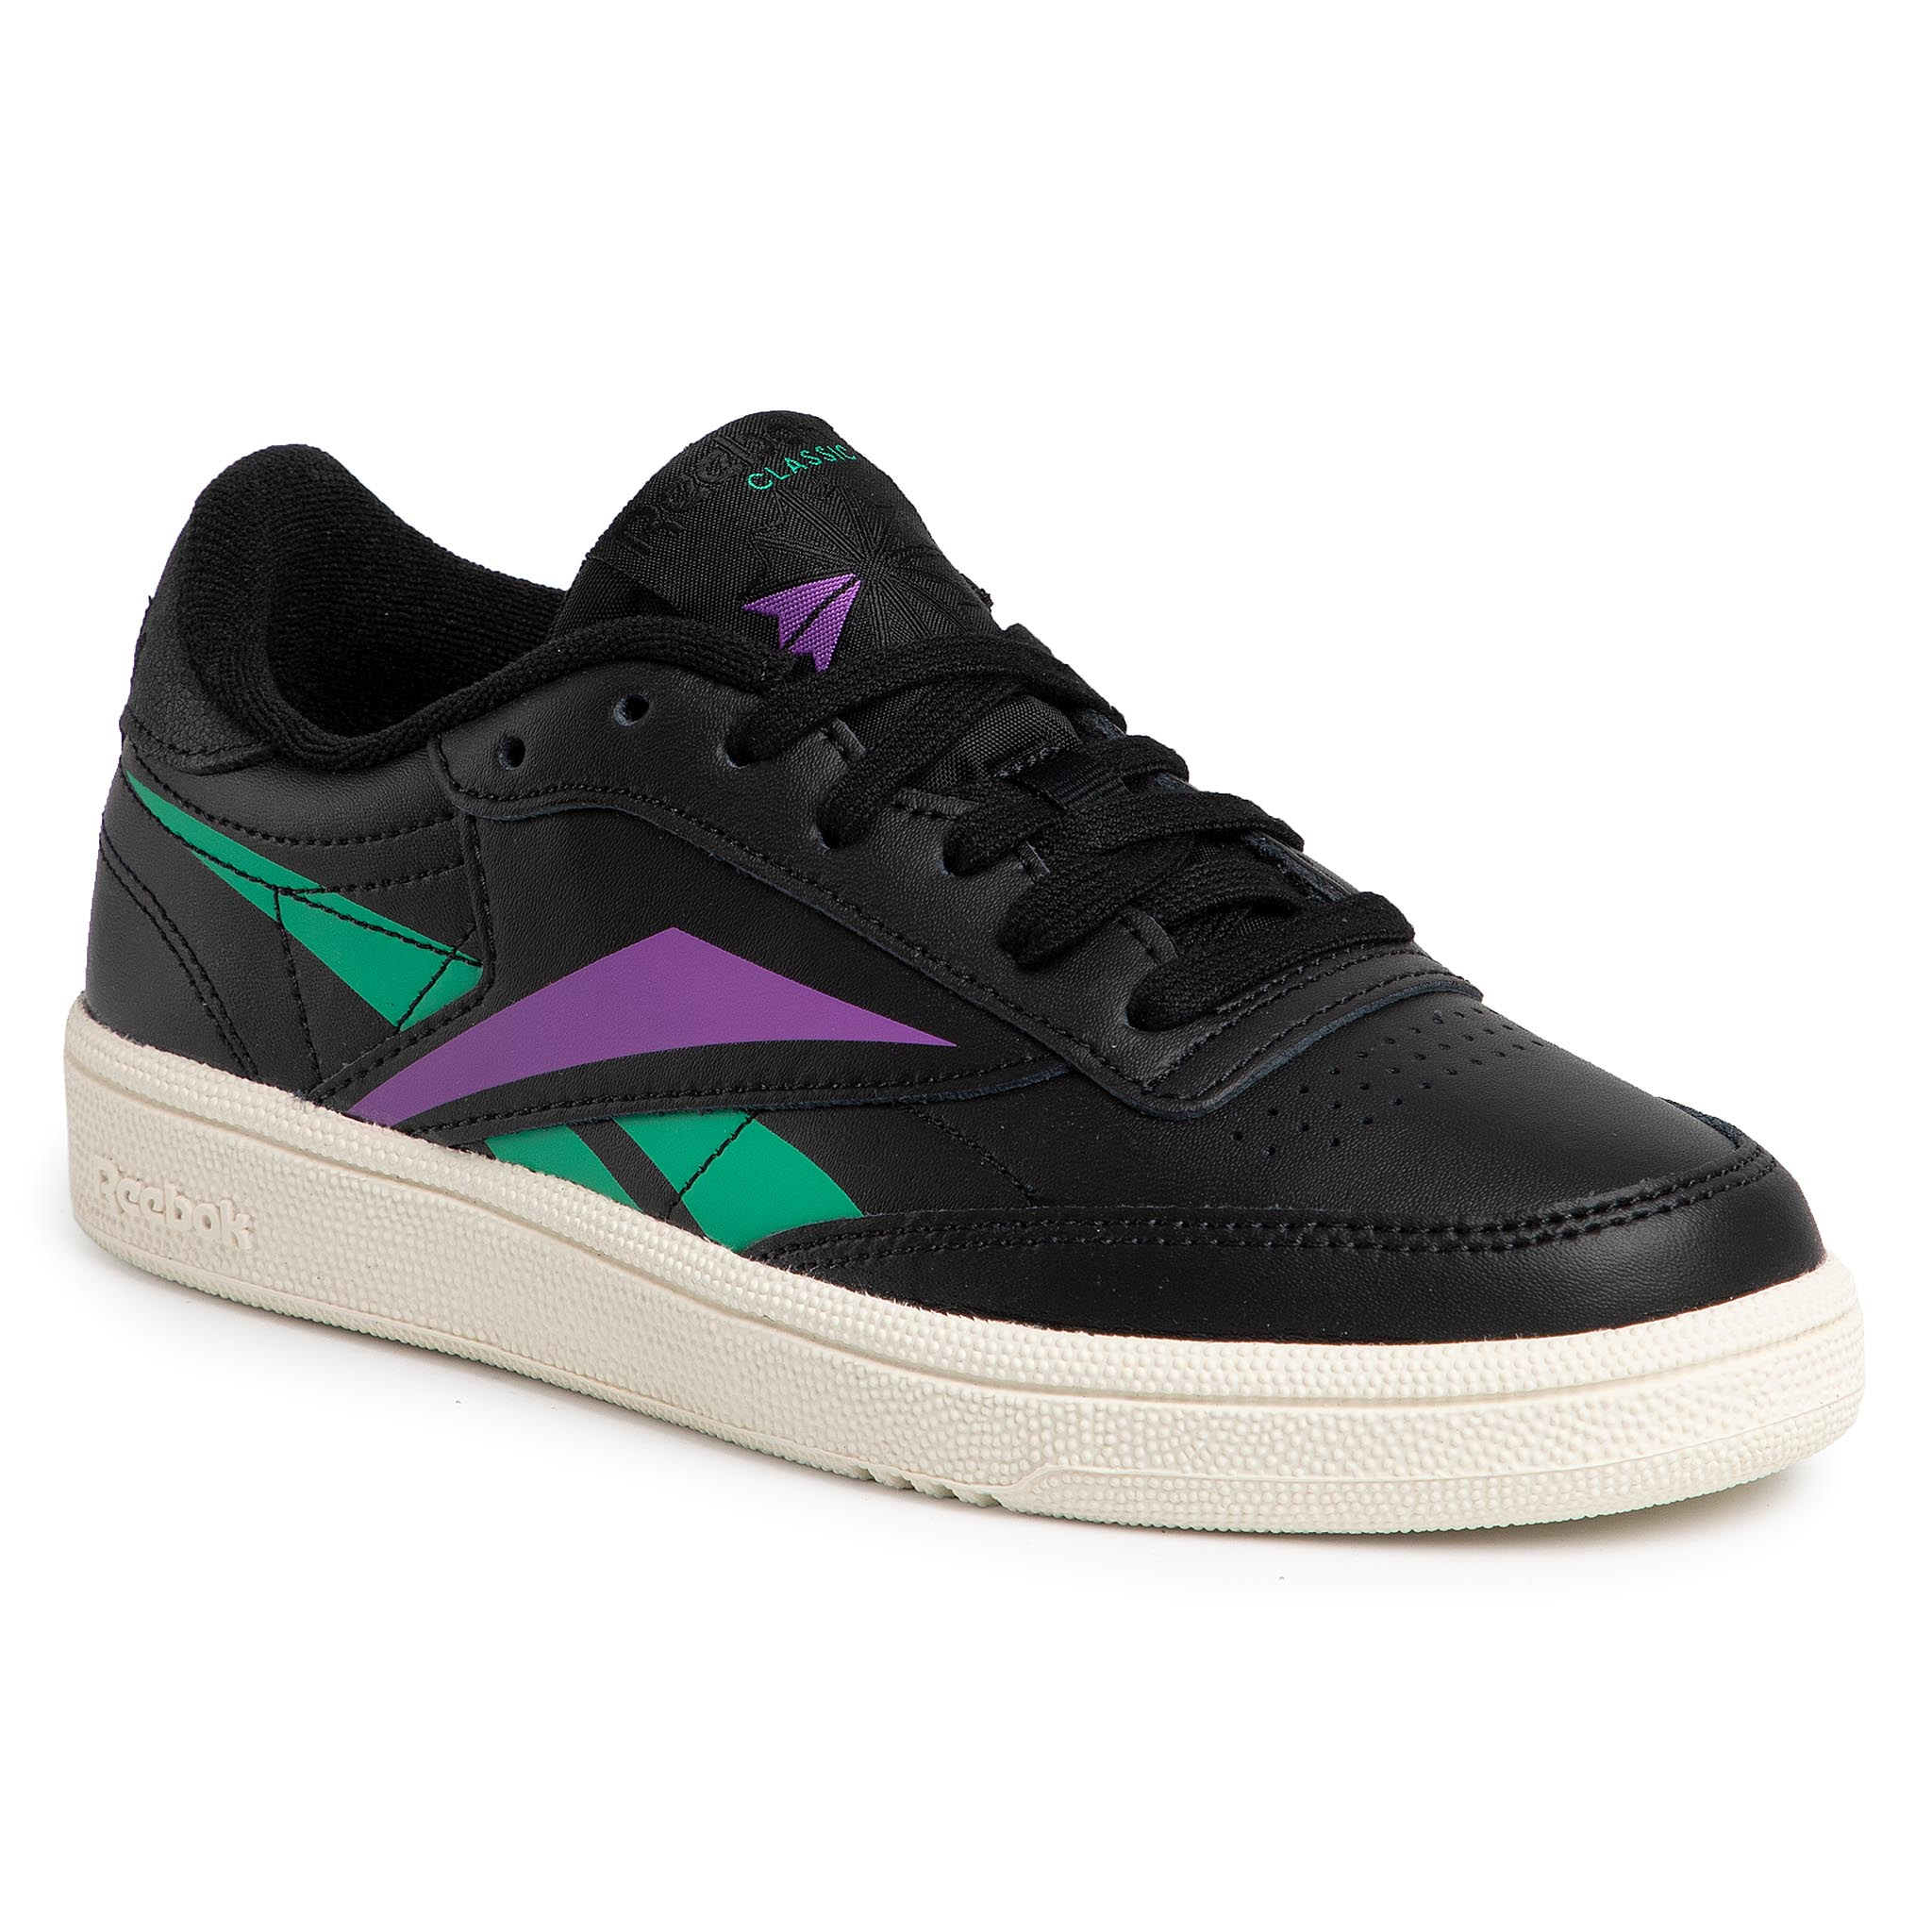 Image of Scarpe Reebok - Club C 85 DV7251 Black/Emeral/Grapun